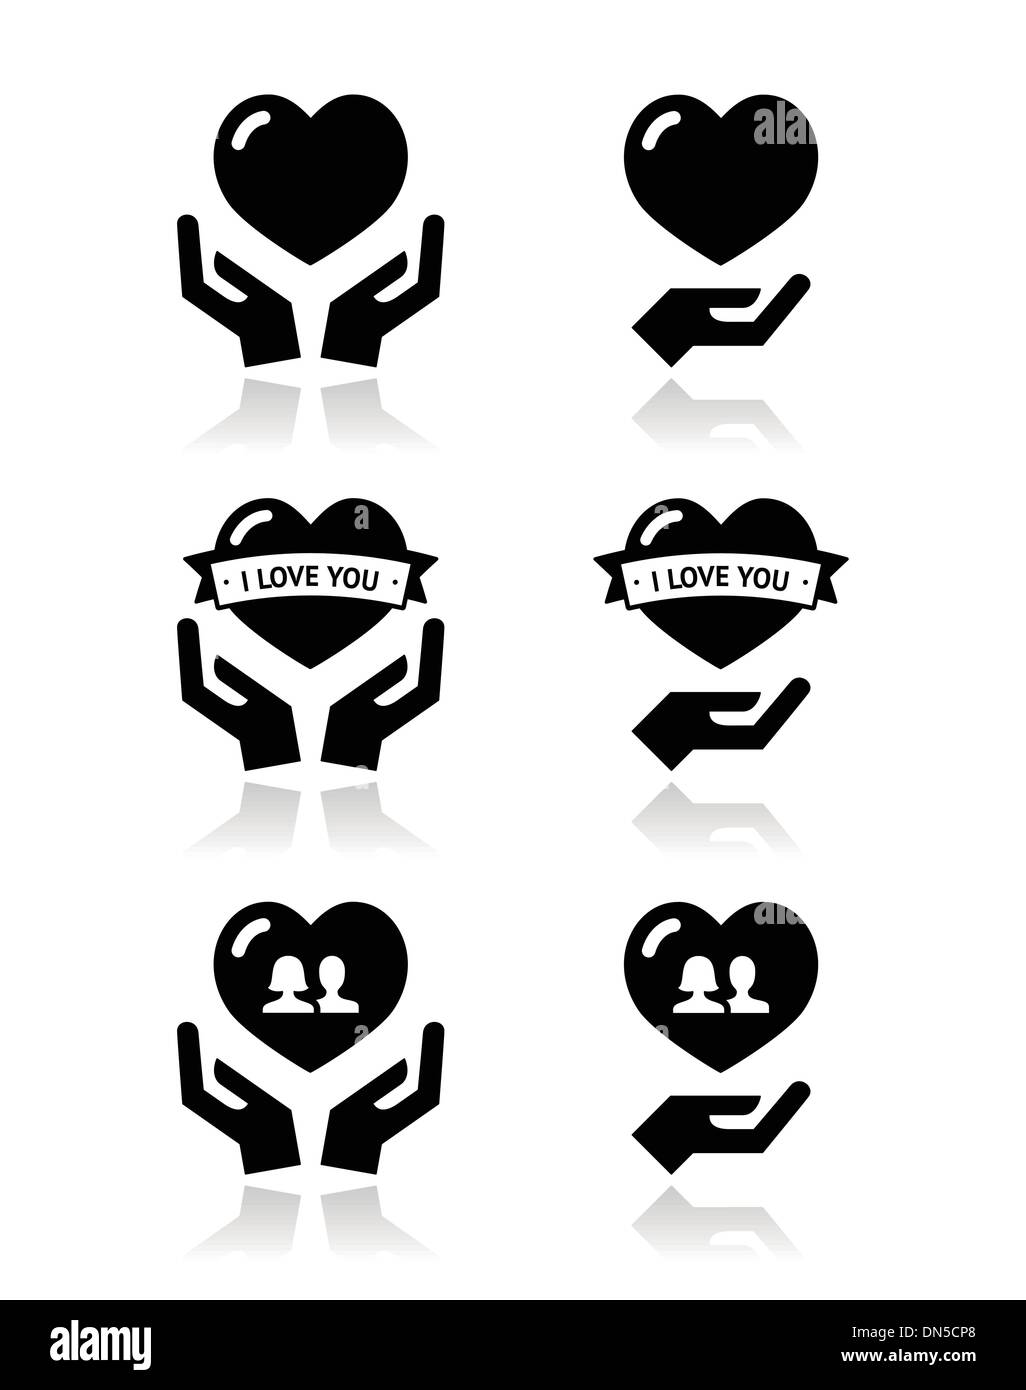 Hands with heart, love, relationship icons set - Stock Vector